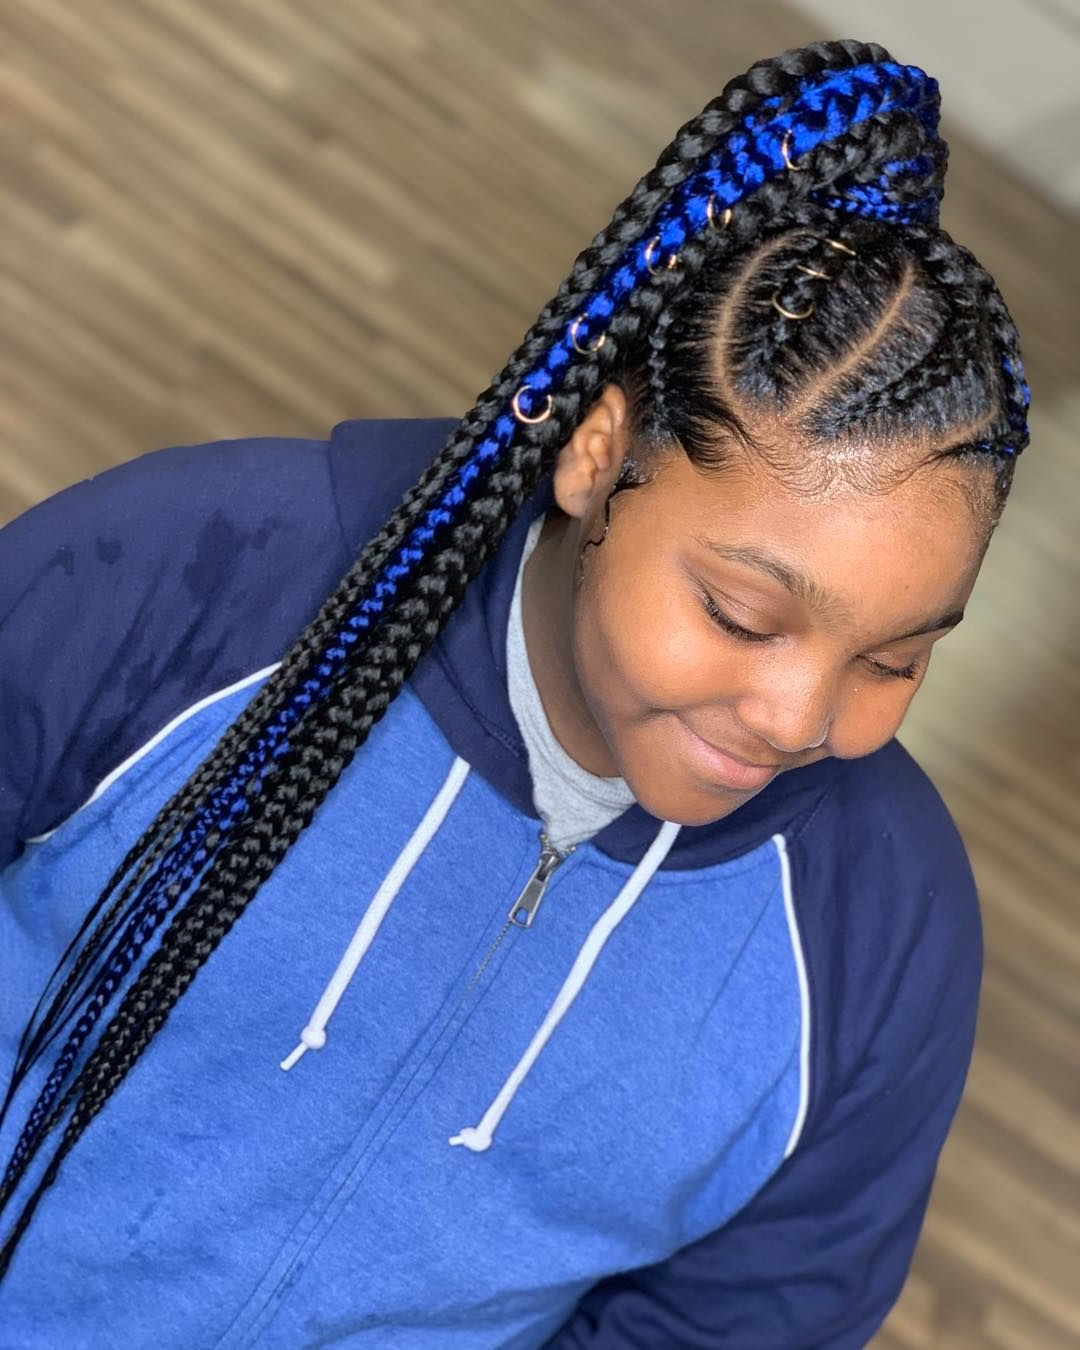 Widely Used Stylish Braids Ponytail Hairstyles With 30 Cute Braided Ponytail Hairstyles For Black Hair That Will Make (View 20 of 20)